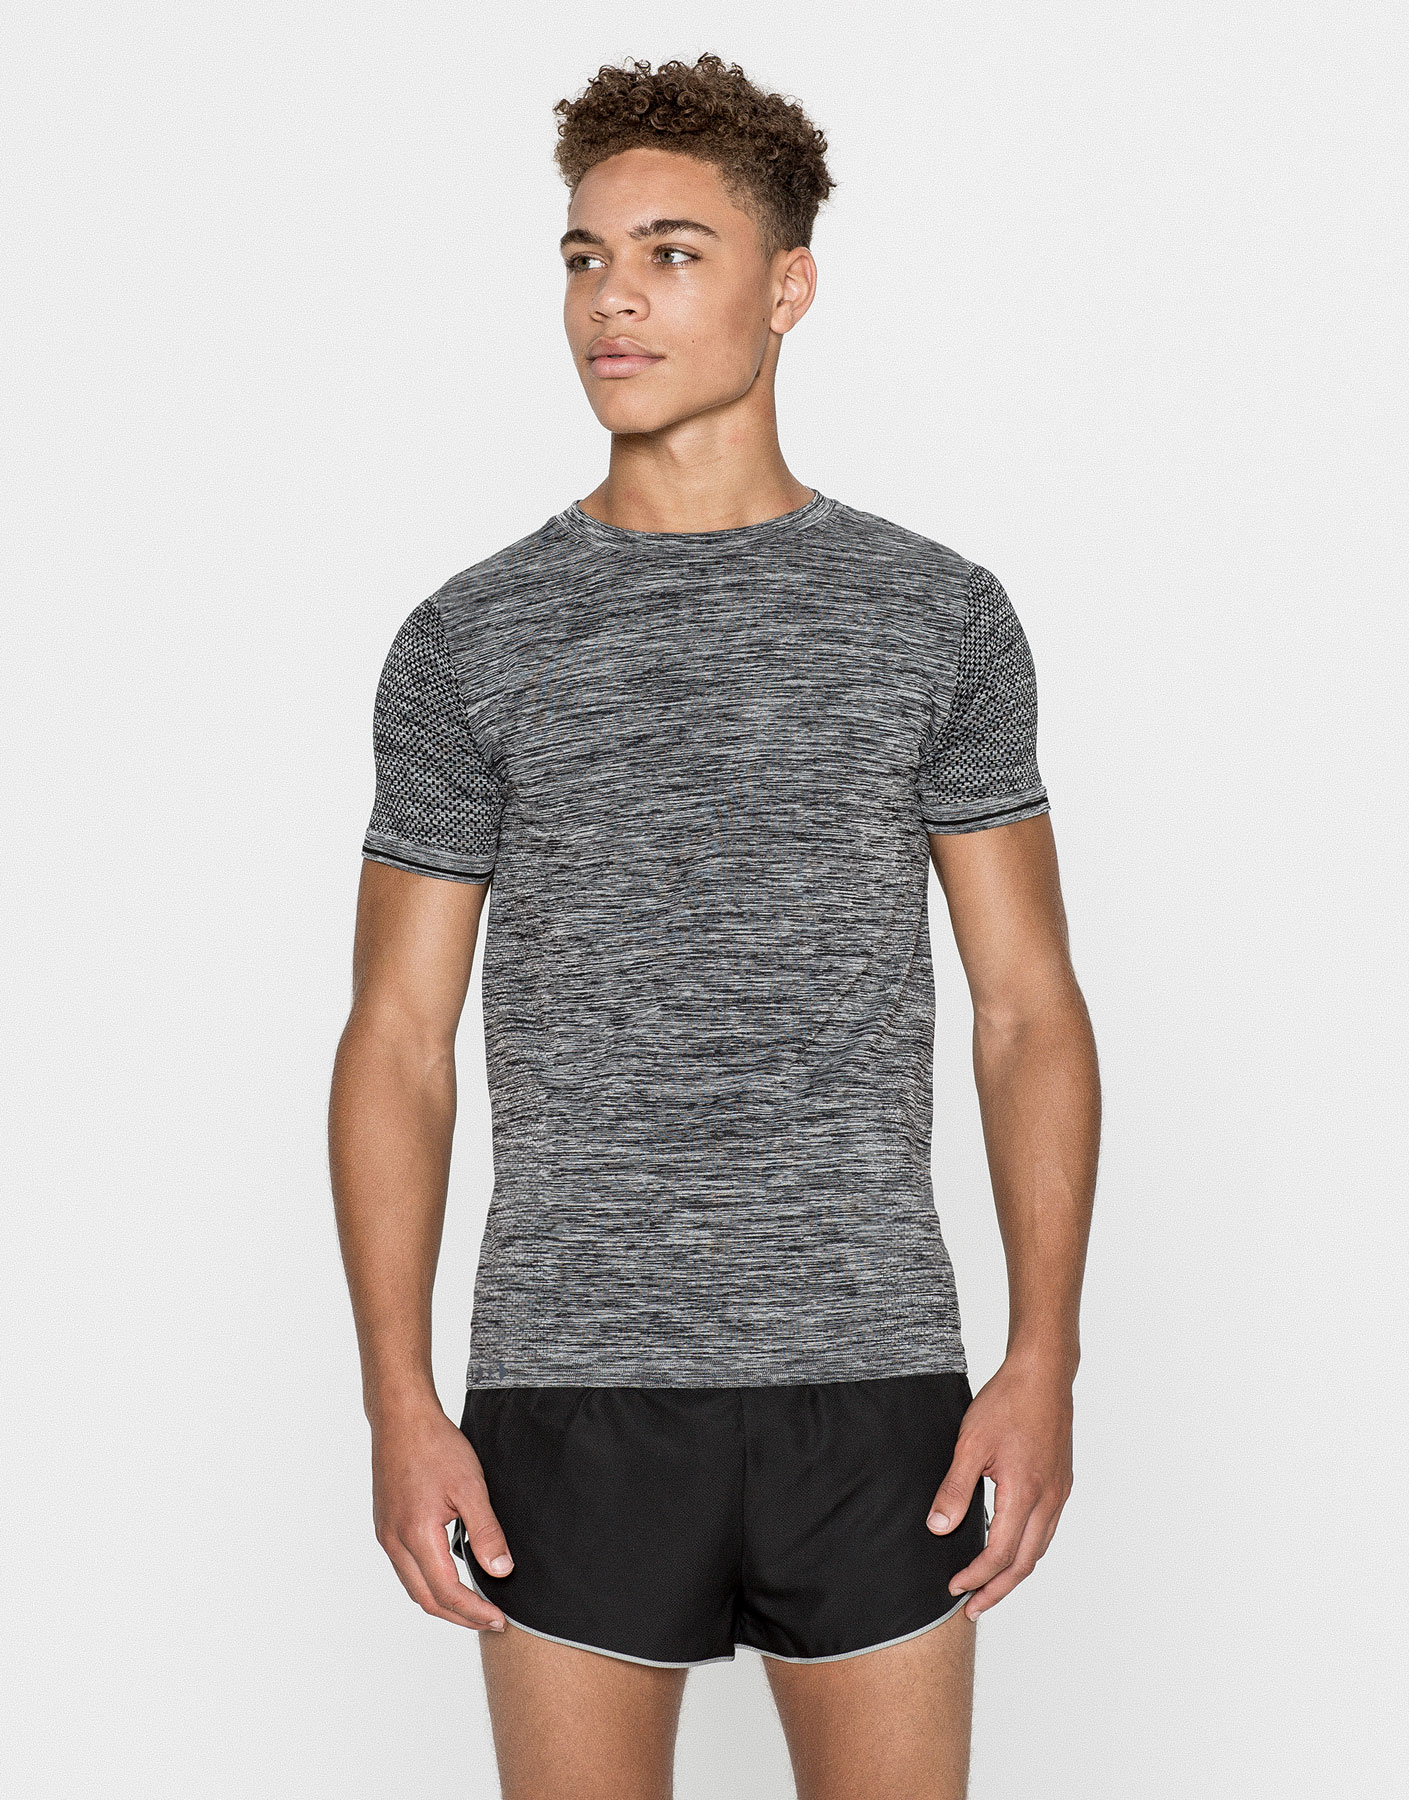 Seamless tech tee